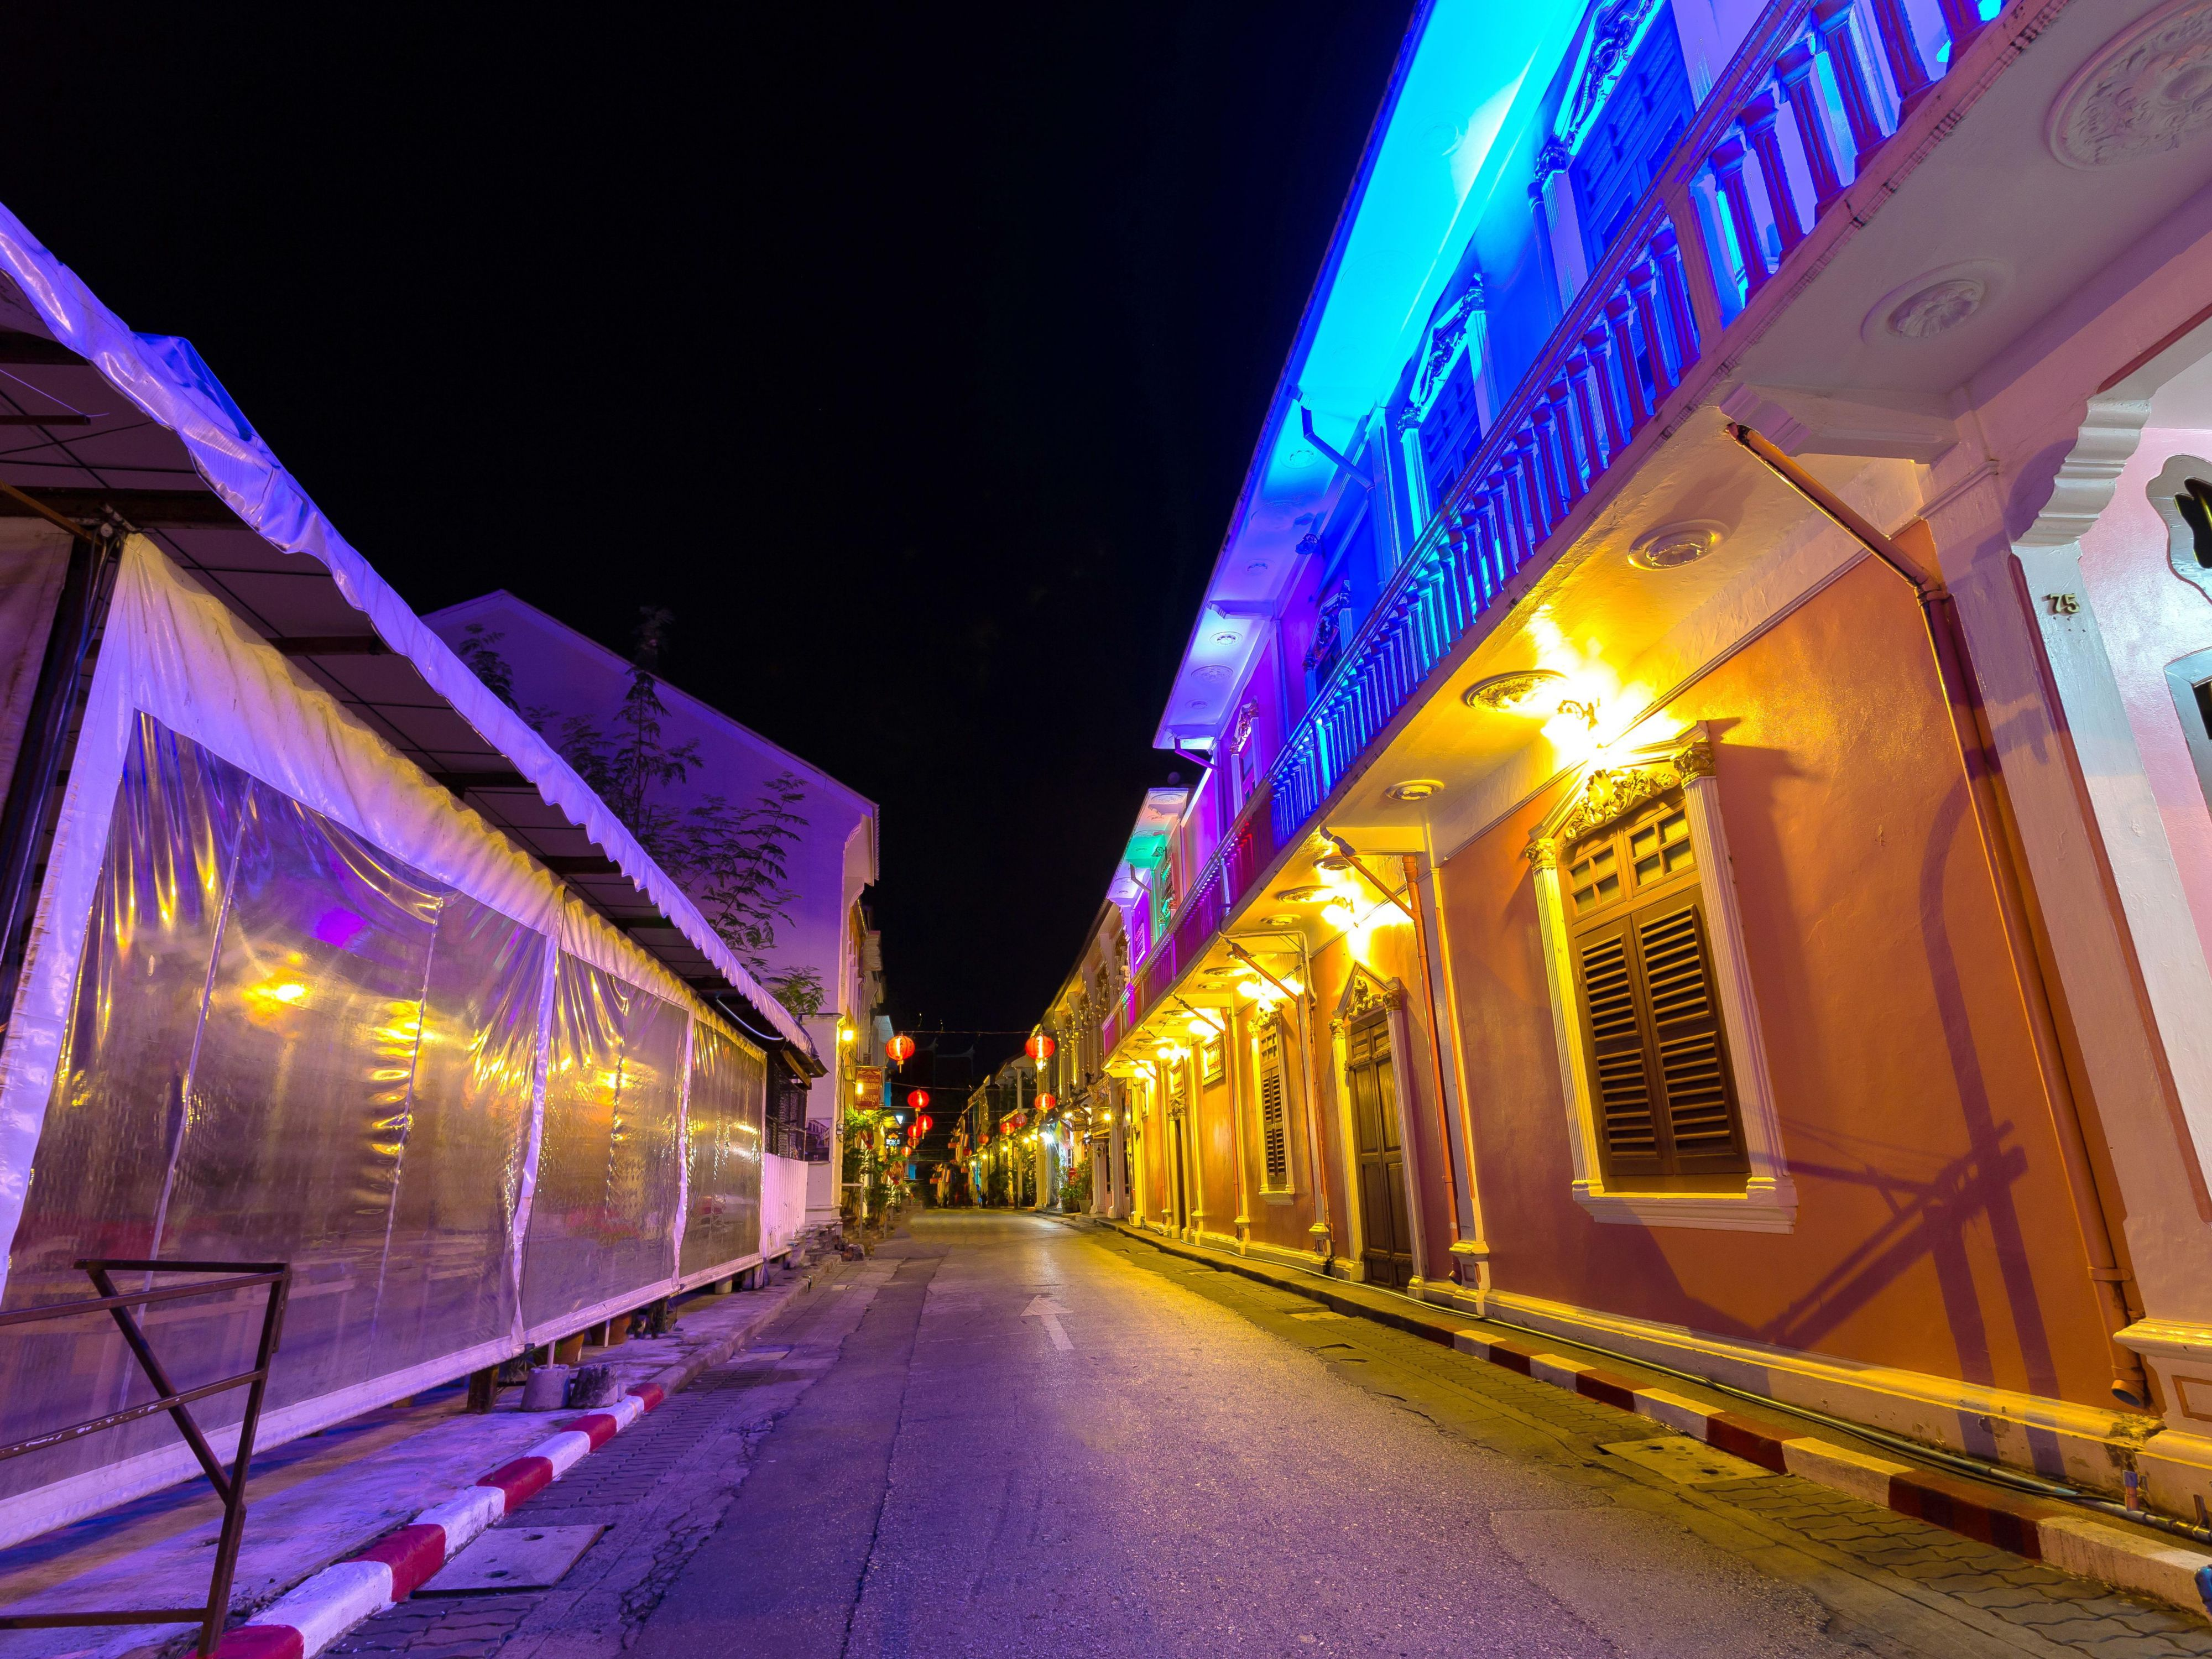 Phuket Old Town, only 30 minutes drive from Holiday Inn Express